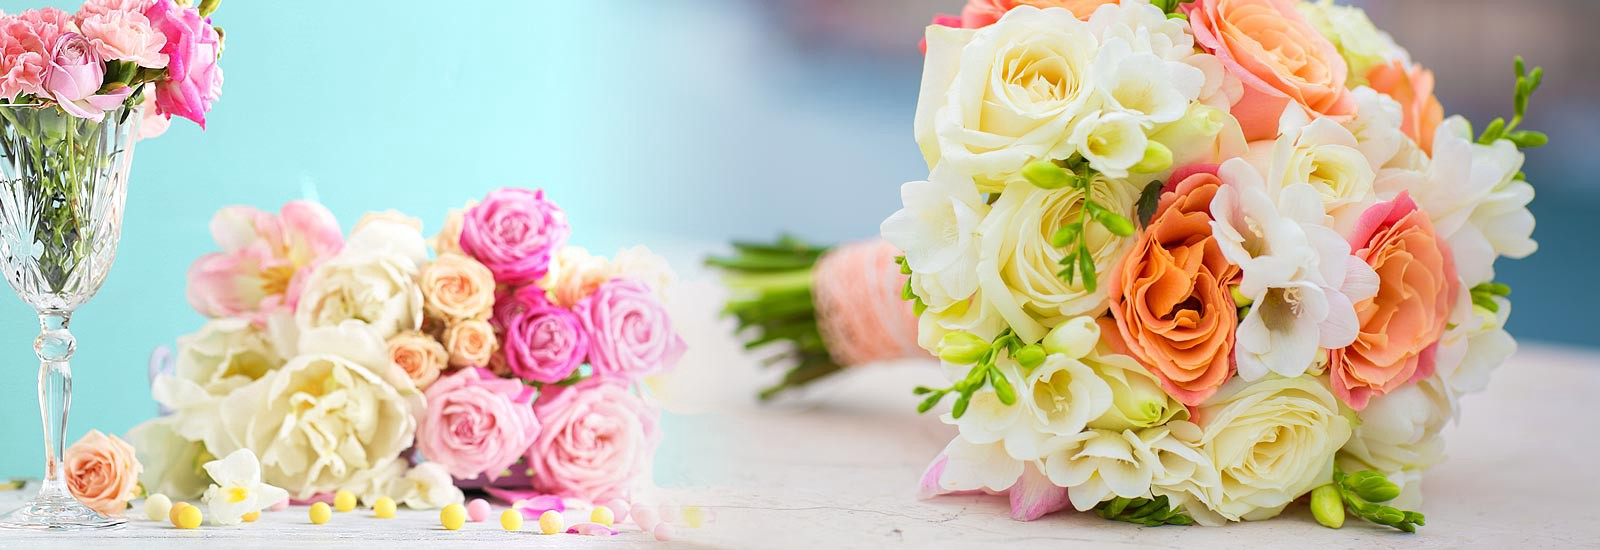 Best Online Florists in Bangalore — Same Day Flower Delivery